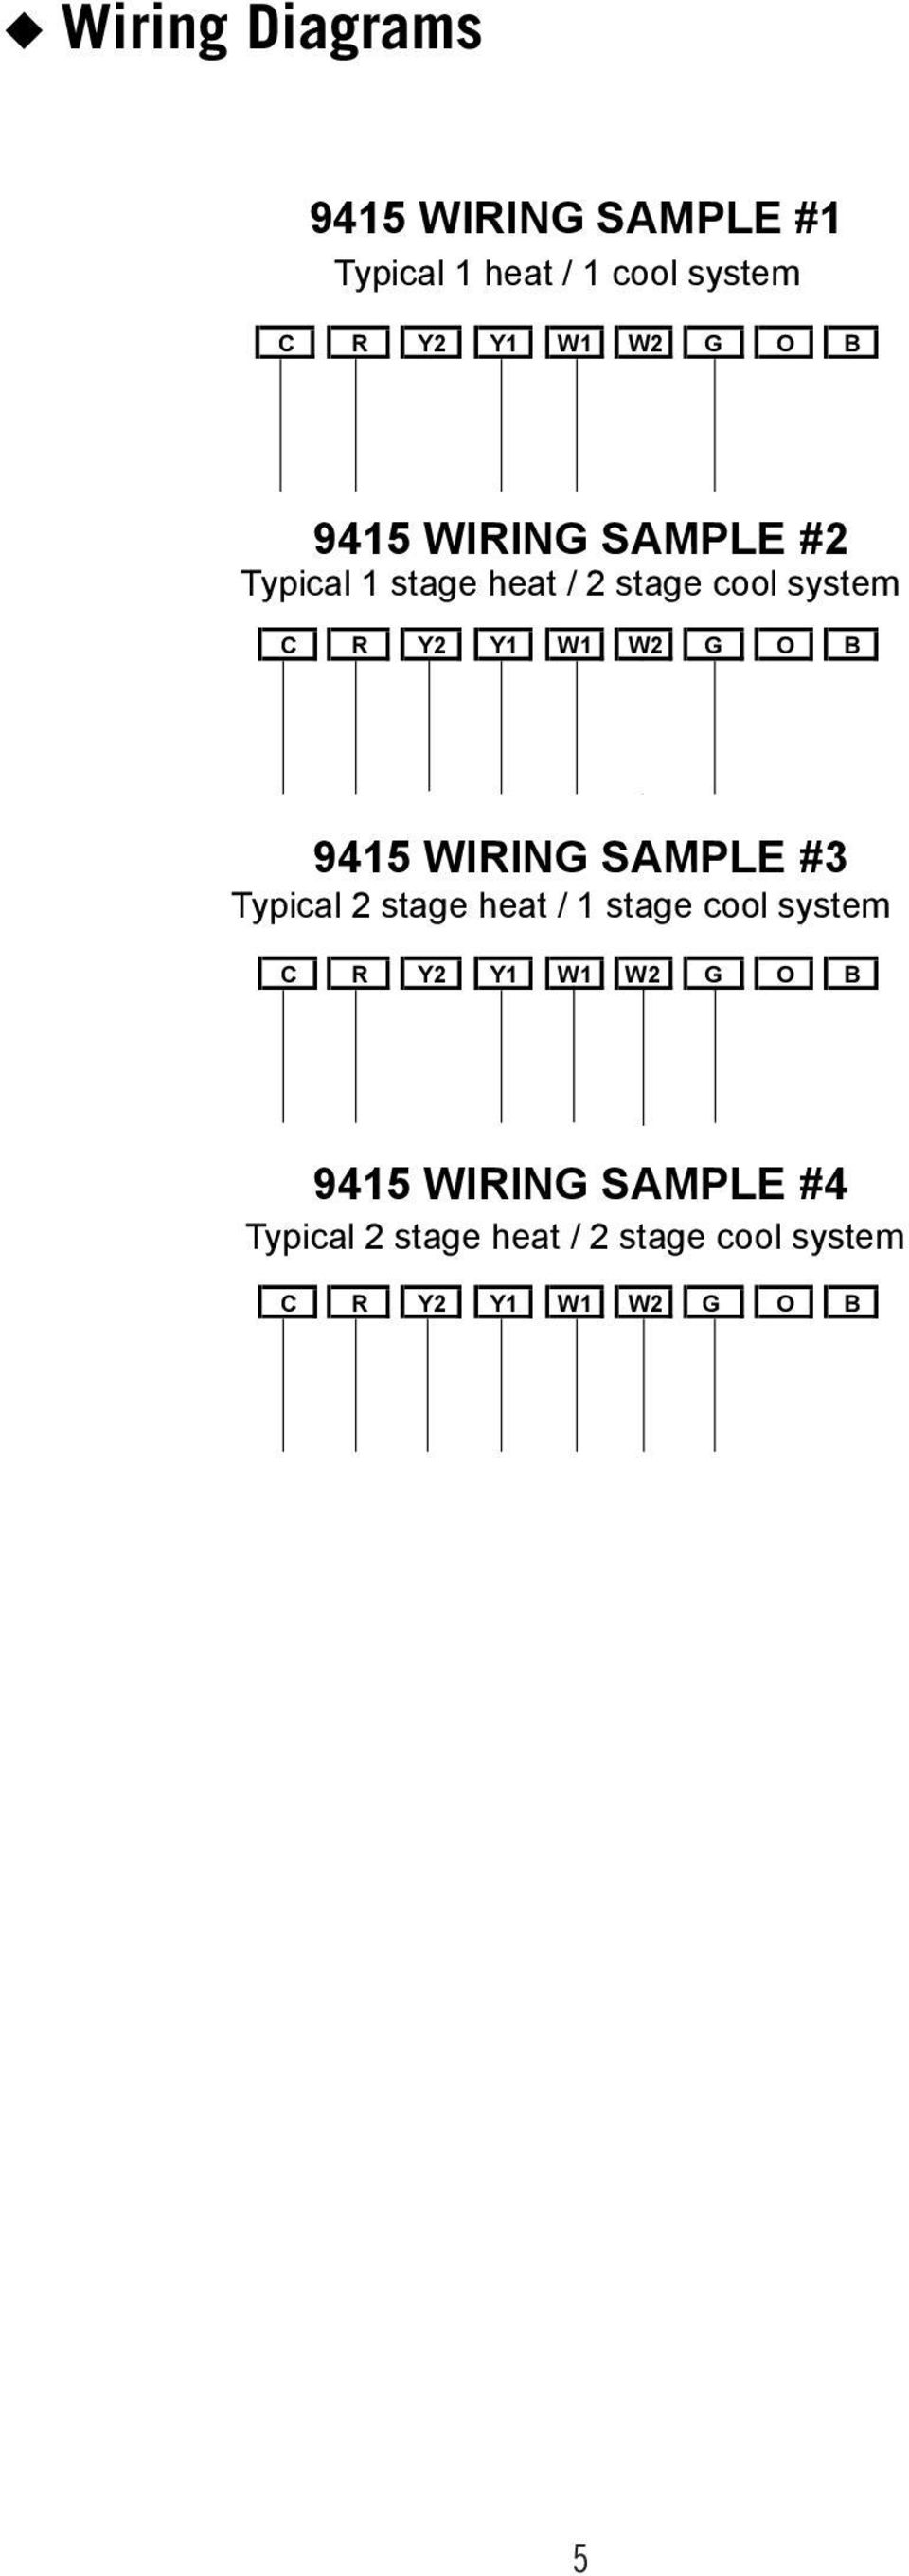 9415 WIRING SAMPLE #3 Typical 2 stage heat / 1 stage cool system C R Y2 Y1 W1 W2 G O B